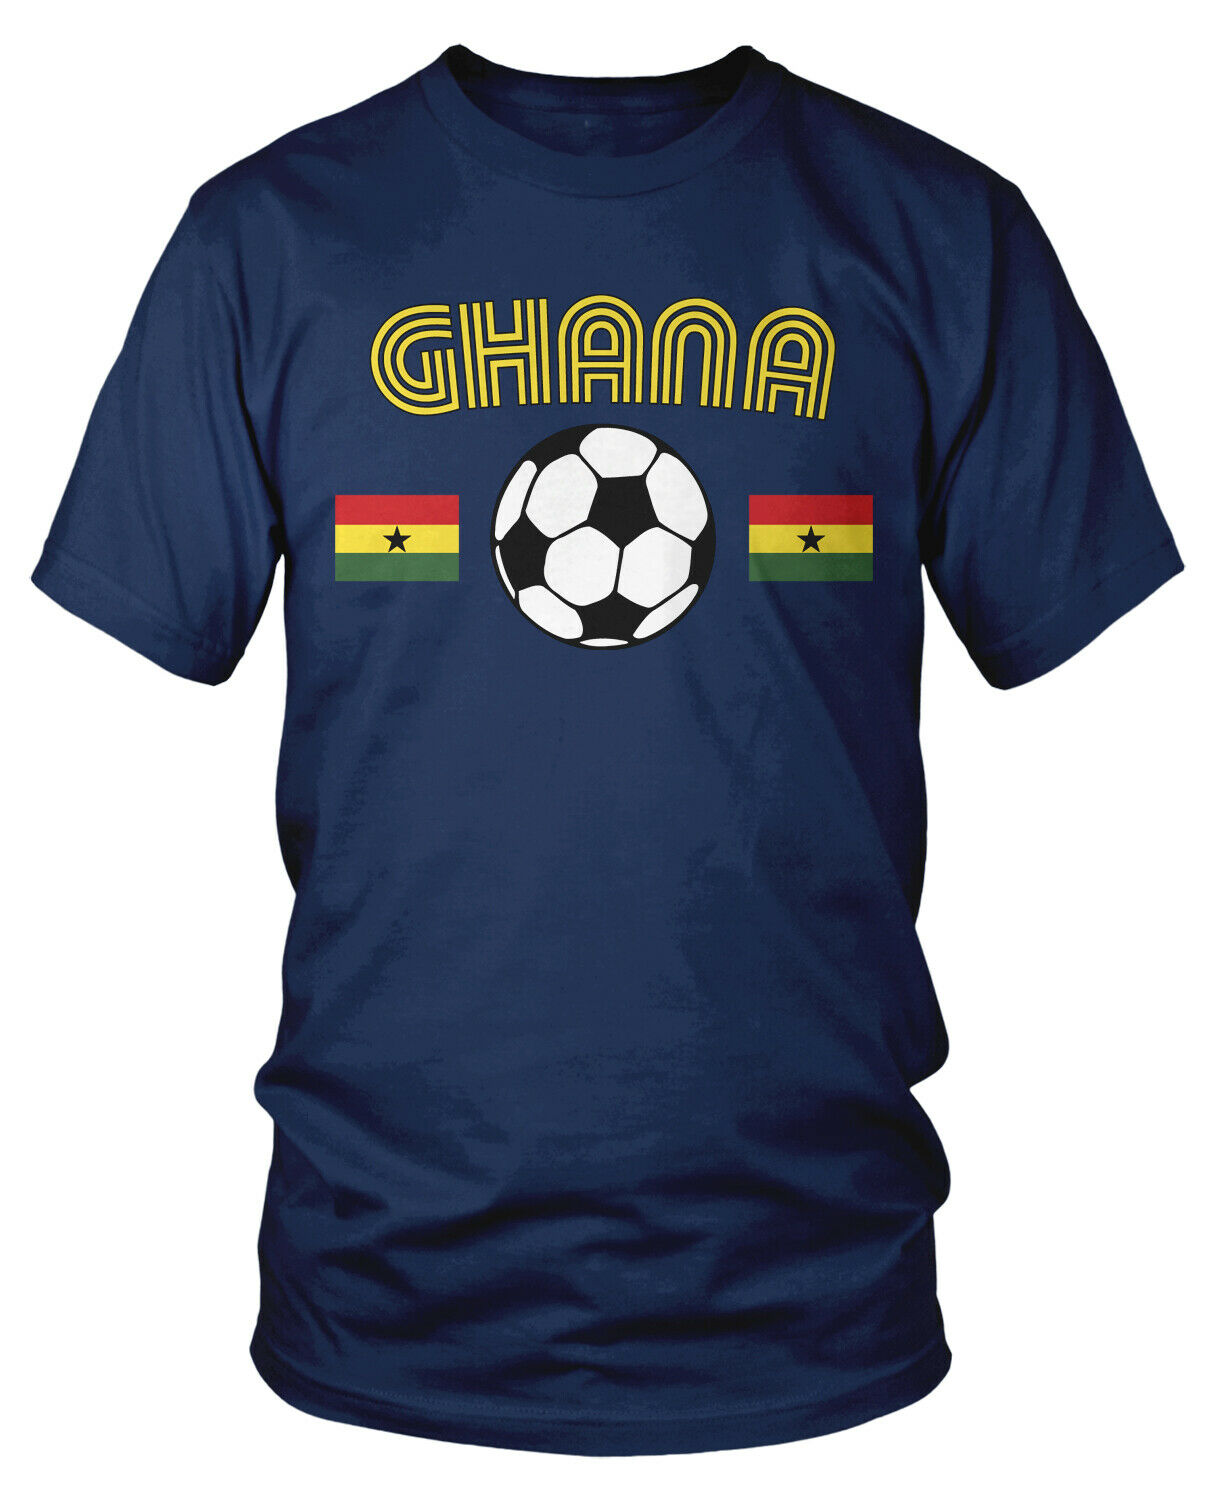 Ghana National Soccer Team The Black Stars Football Africa Long Sleeve Thermal